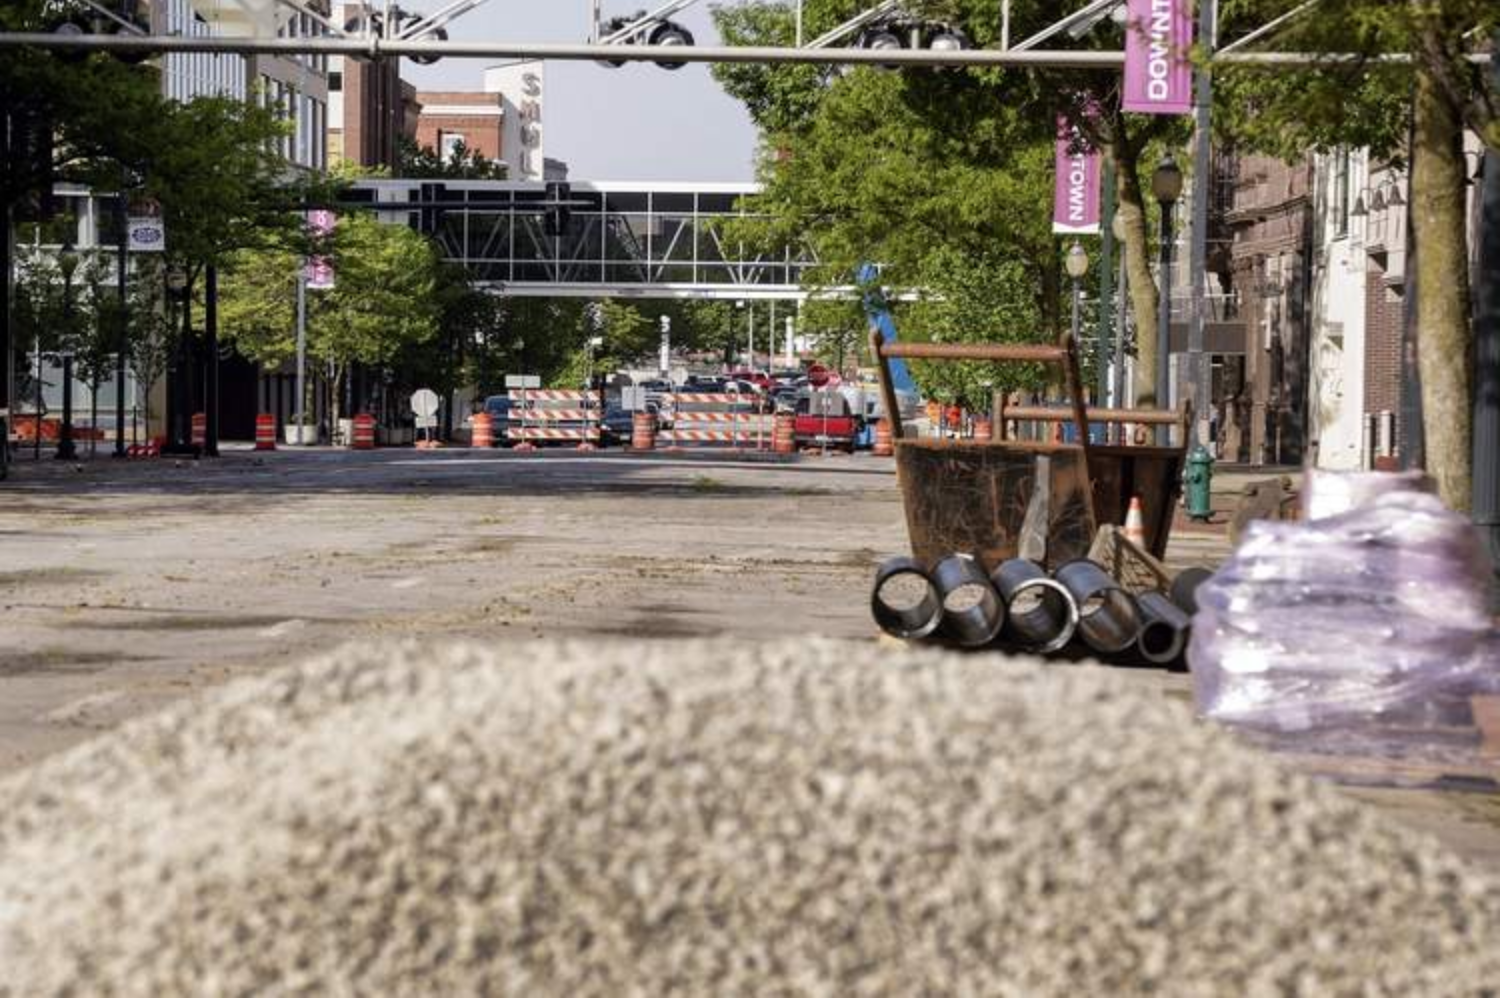 Work begins last week on converting Third Avenue SE near Greene Square from one-way to two-way traffic. It marks the final downtown street to undergo the conversions that began in 2015. (Jim Slosiarek/The Gazette)